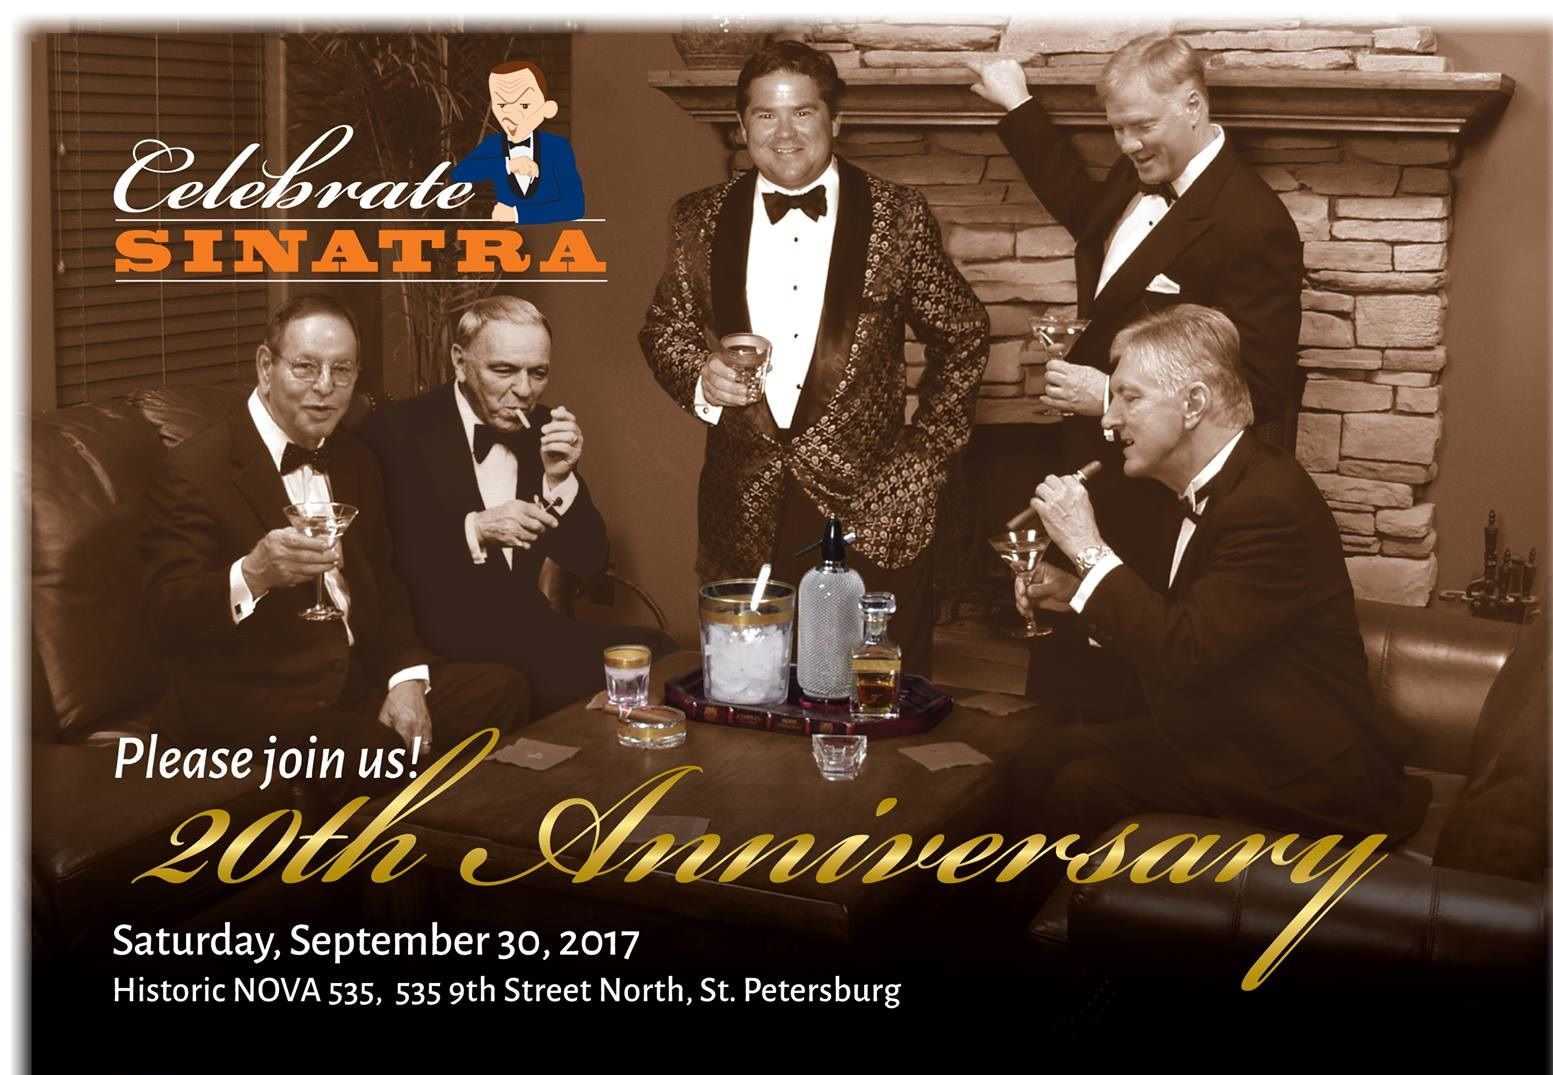 Celebrate Sinatra Saturday Sept 30, 2017 at NOVA 535 flyer